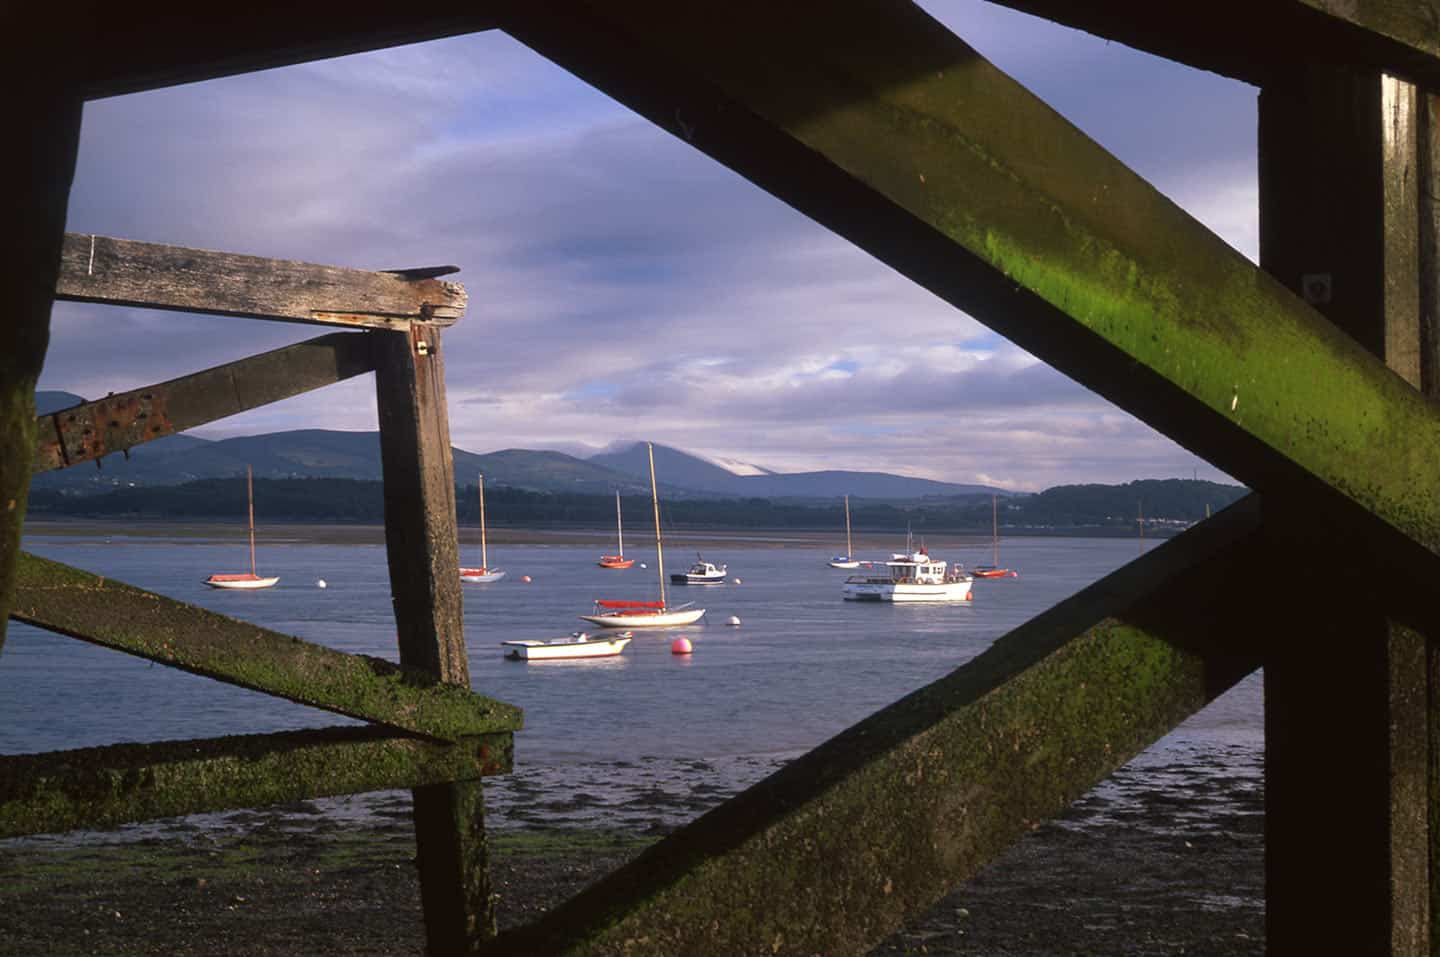 Anglesey UK Image of the Menai Strait, Anglesey from below Beaumaris Pier